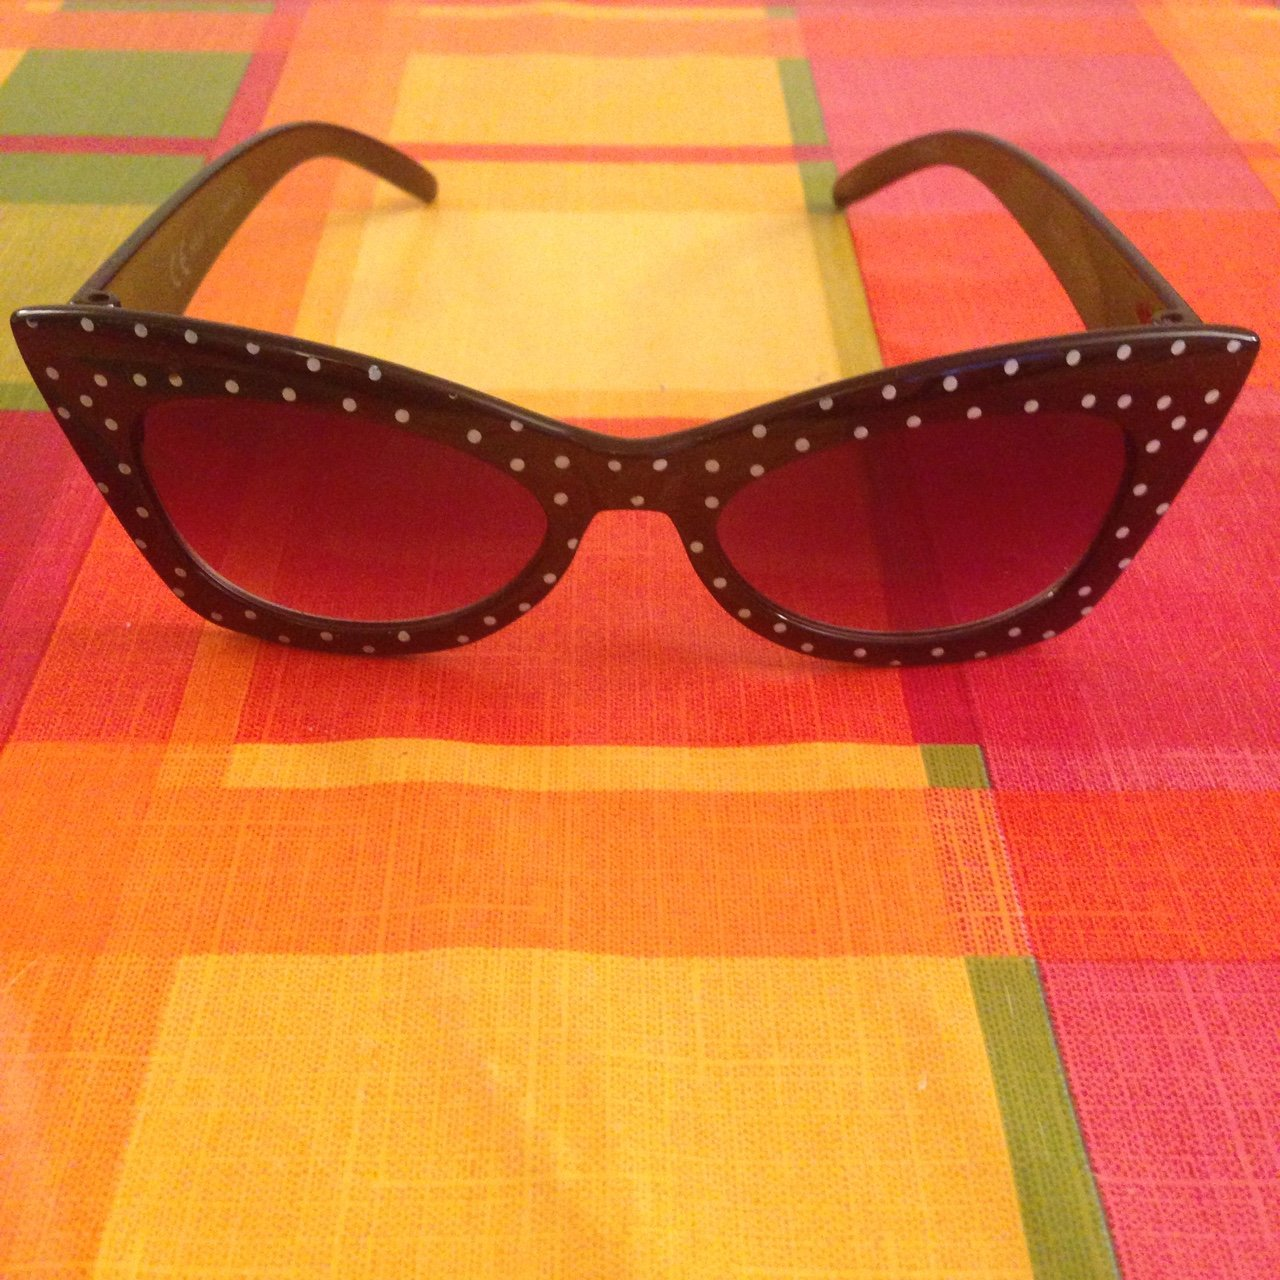 9fb494f1a1 Black and white polka dot sunglasses. 50s style. Excellent - Depop